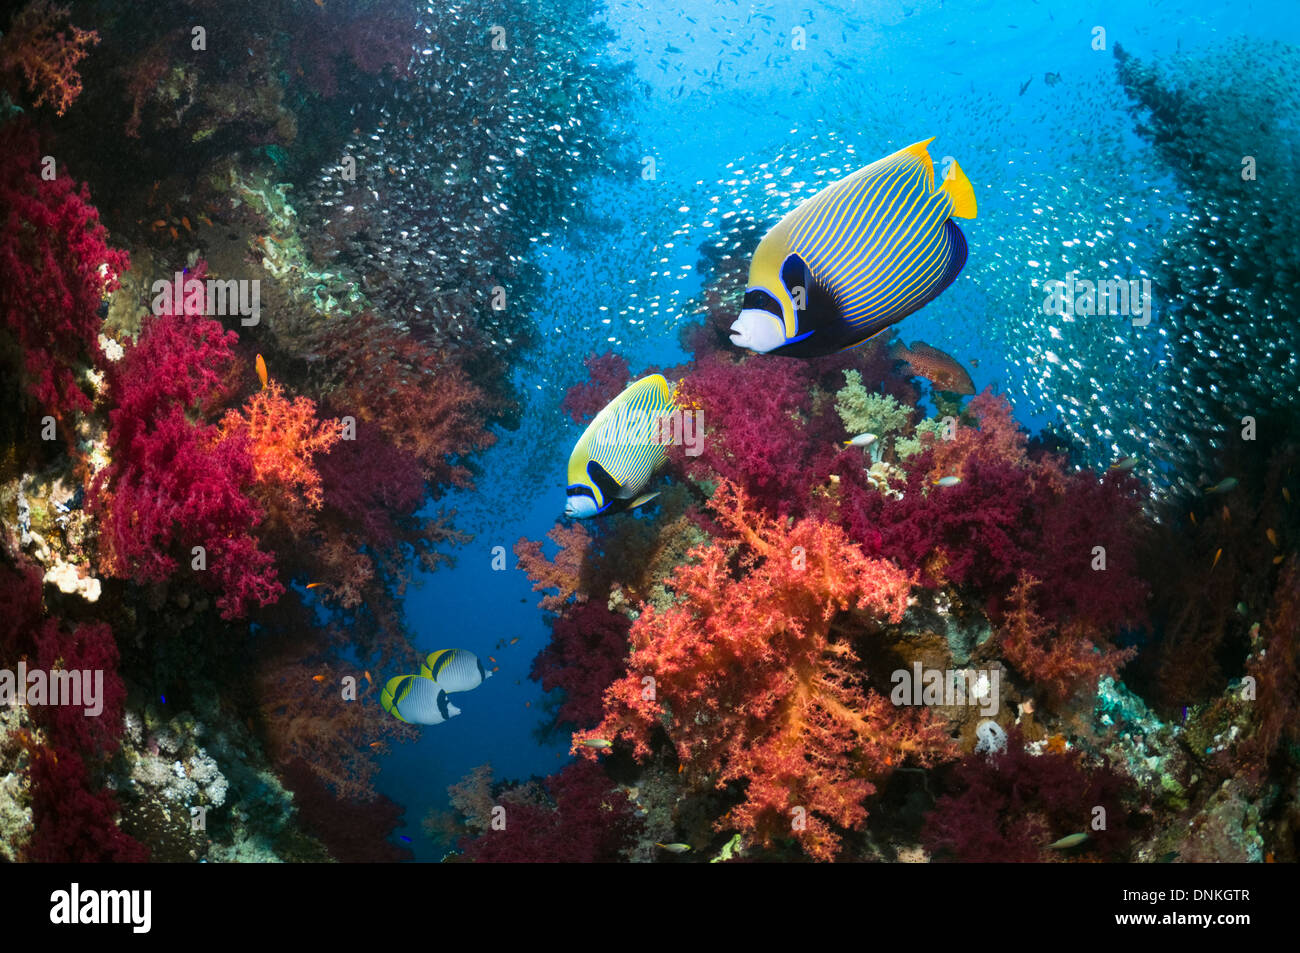 Coral reef scenery with Emperor angelfish - Stock Image